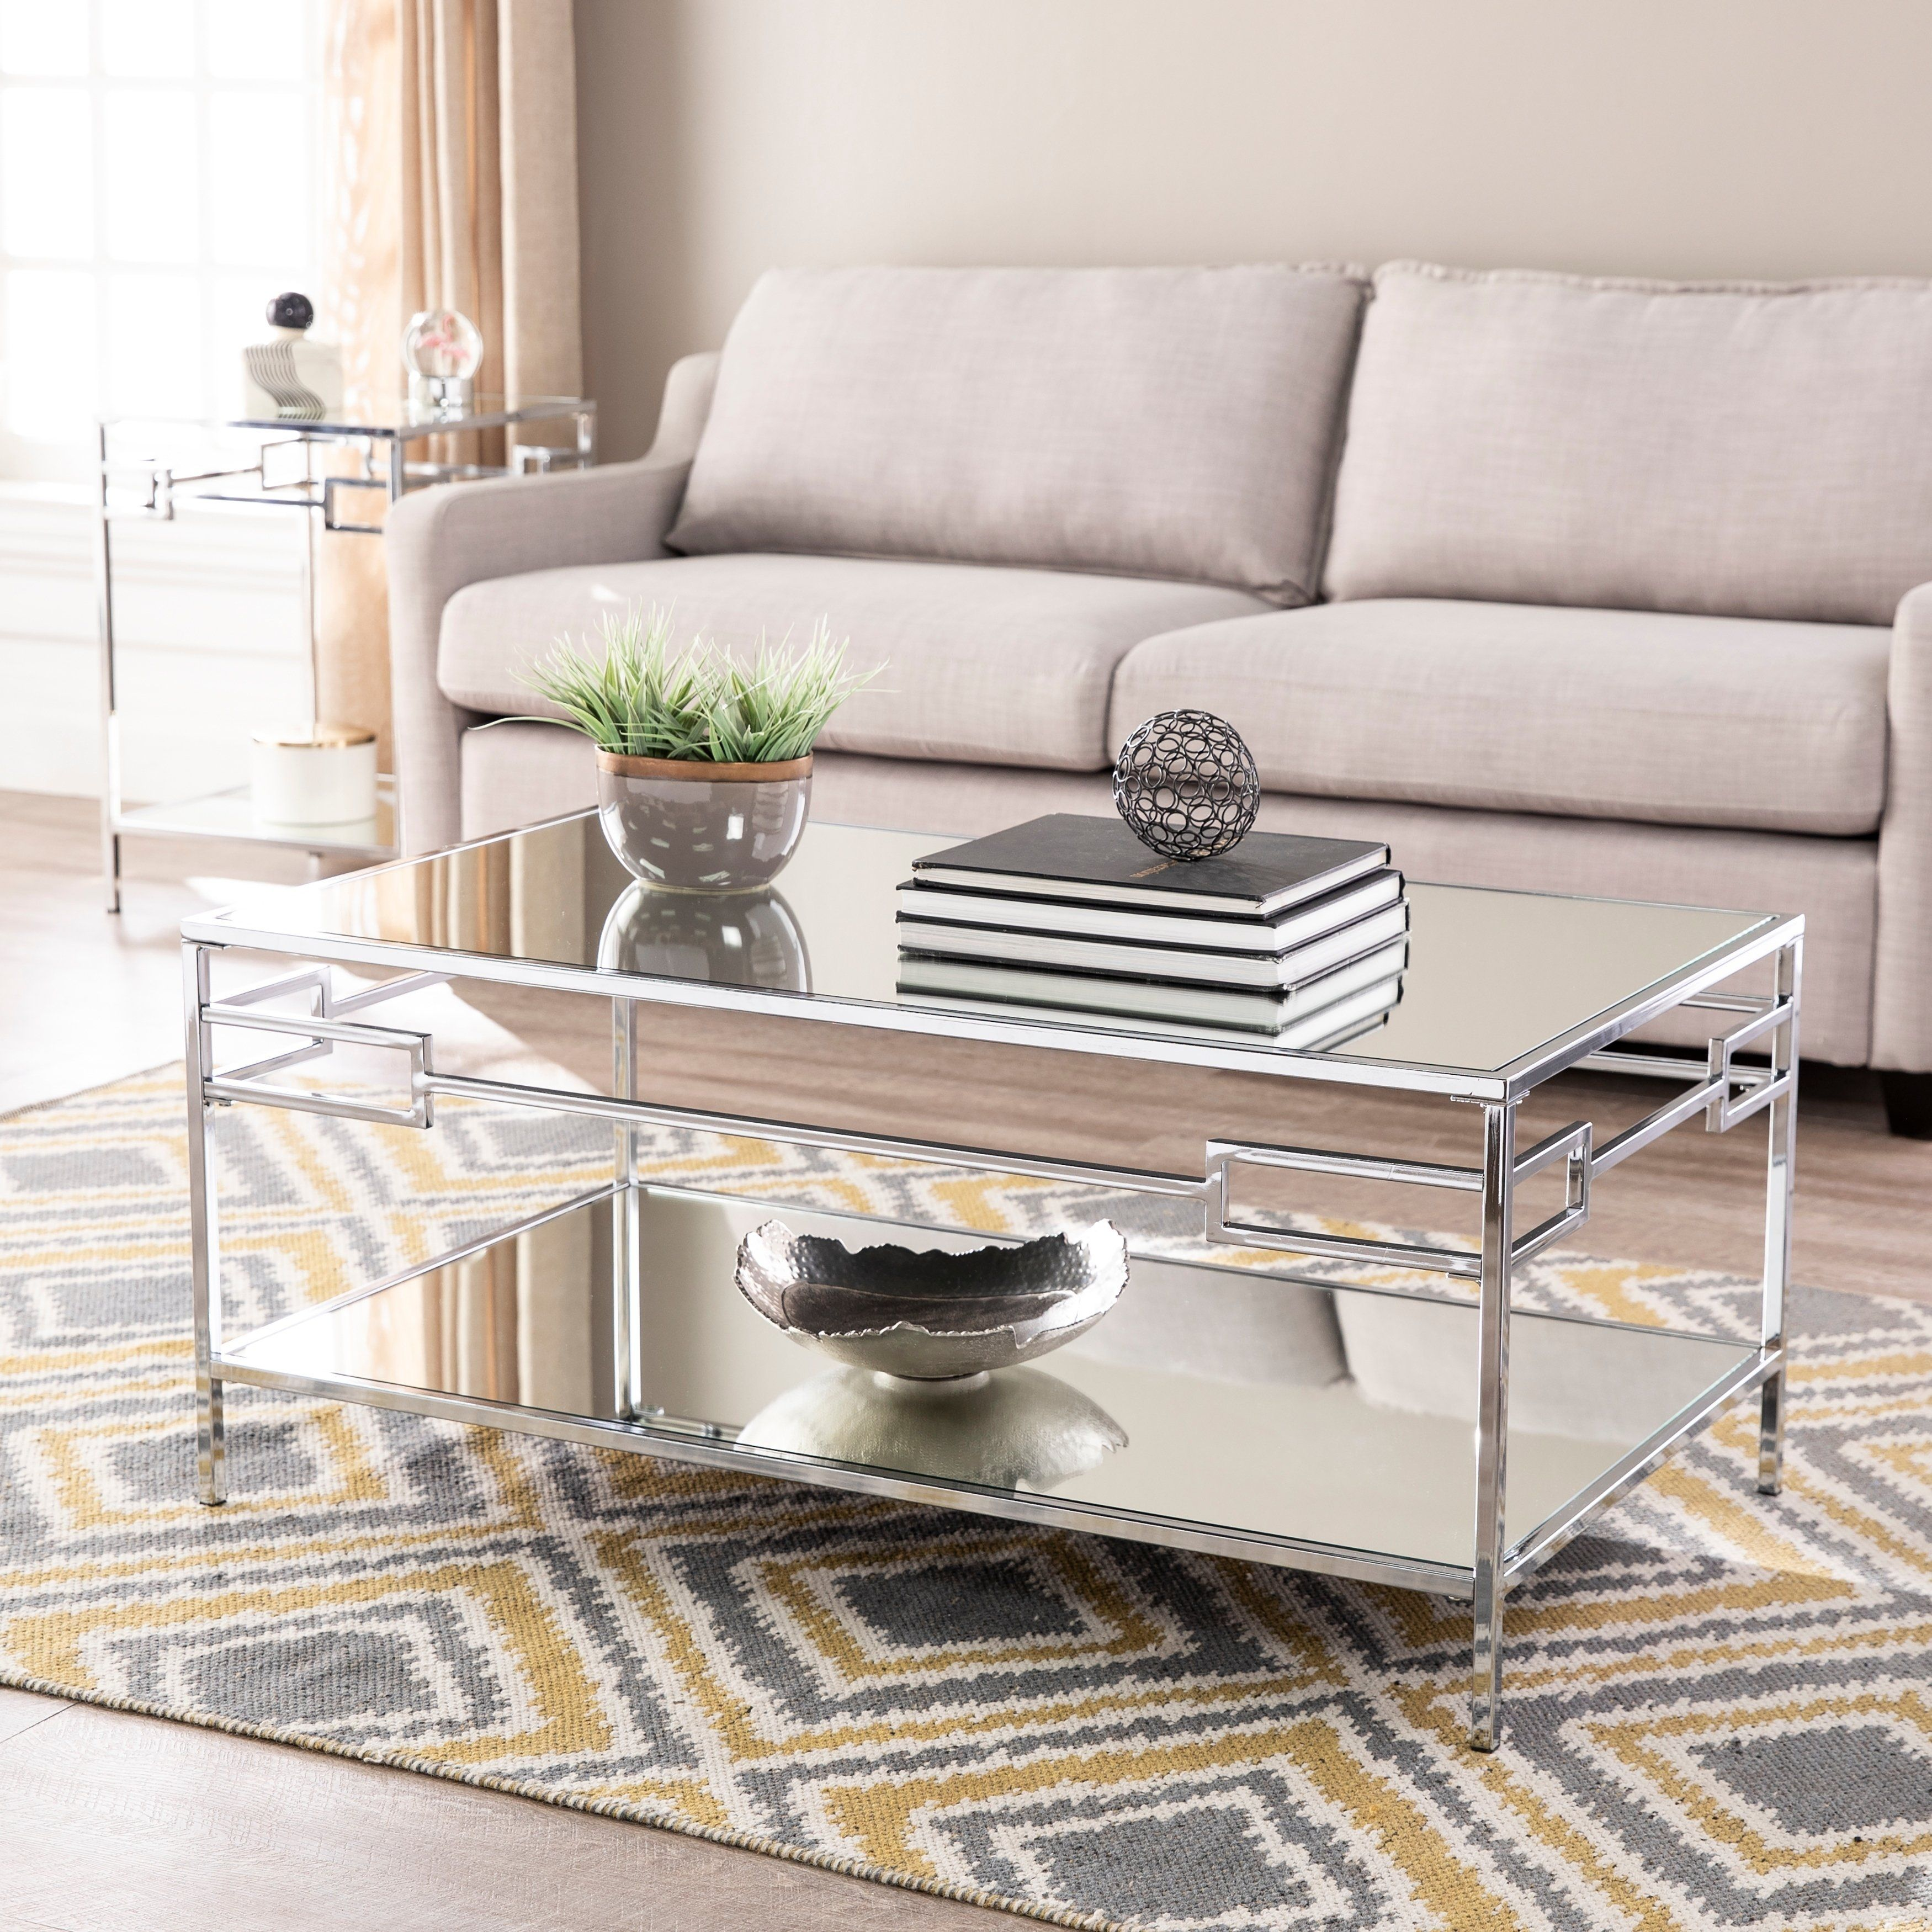 Our Best Living Room Furniture Deals Coffee Table Living Room Coffee Table Mirrored Coffee Tables [ 3500 x 3500 Pixel ]